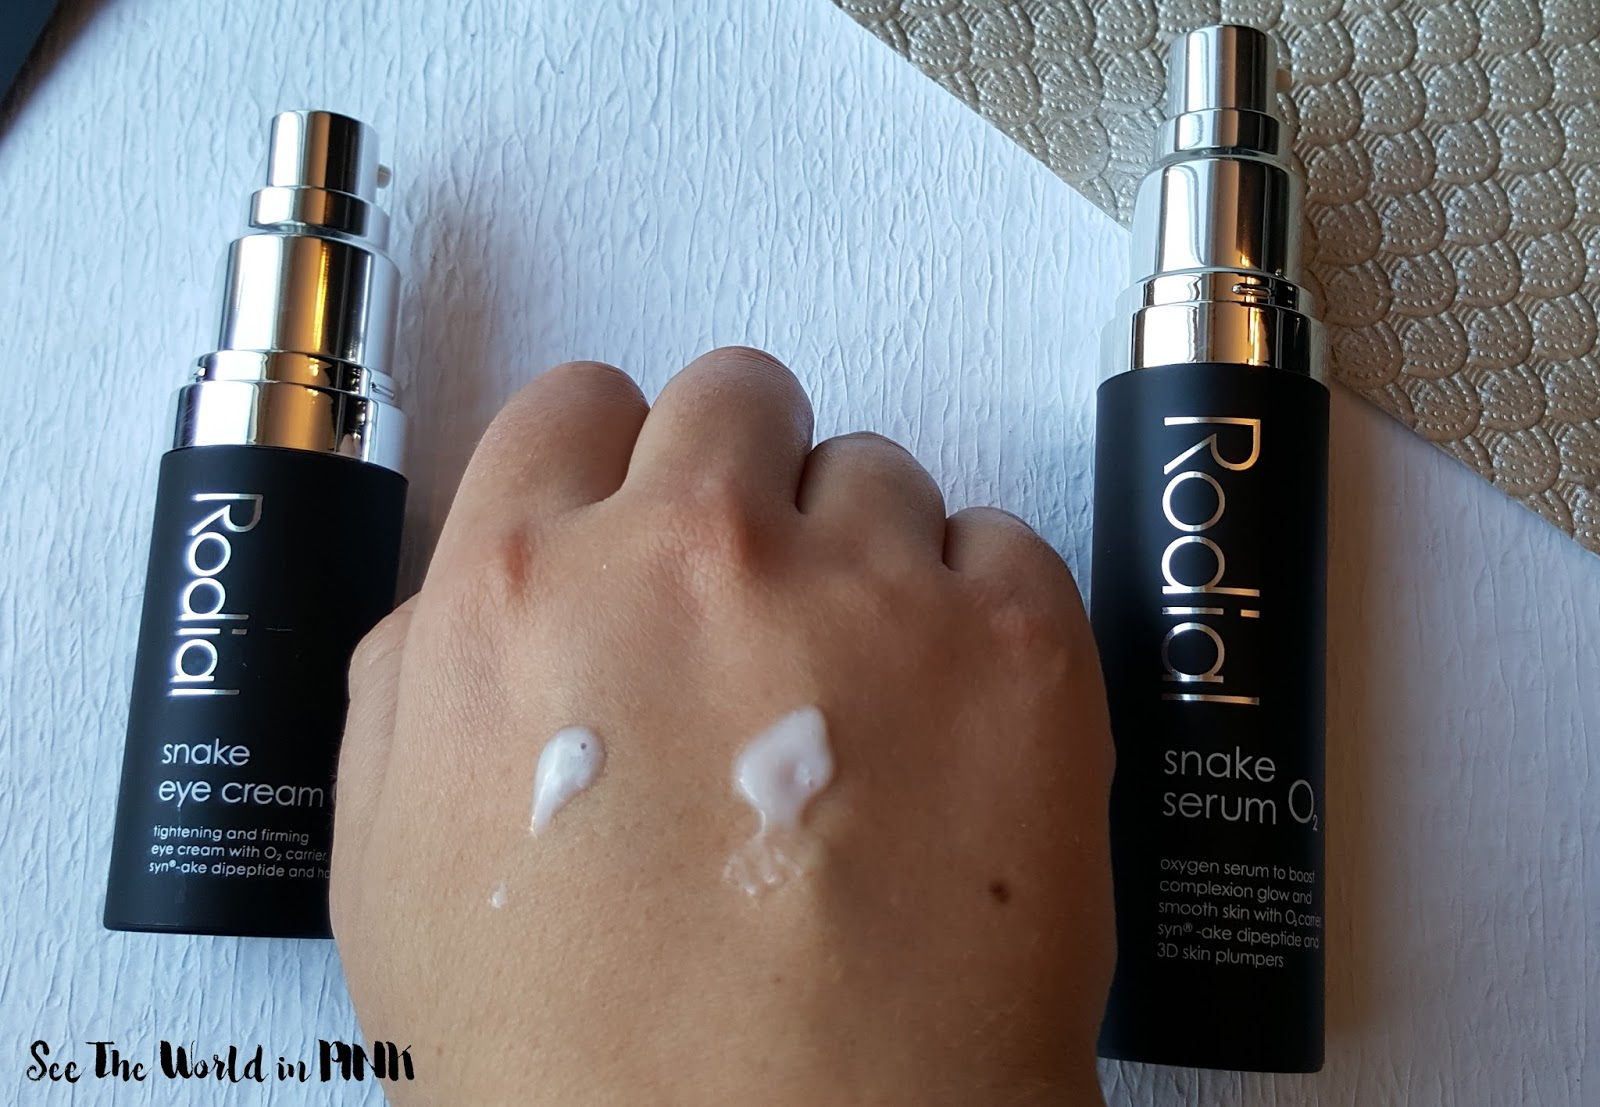 Mask Thursday - New Rodial Snake Oxygenating & Cleansing Bubble Mask Review + A Few Extra Snake Goodies!